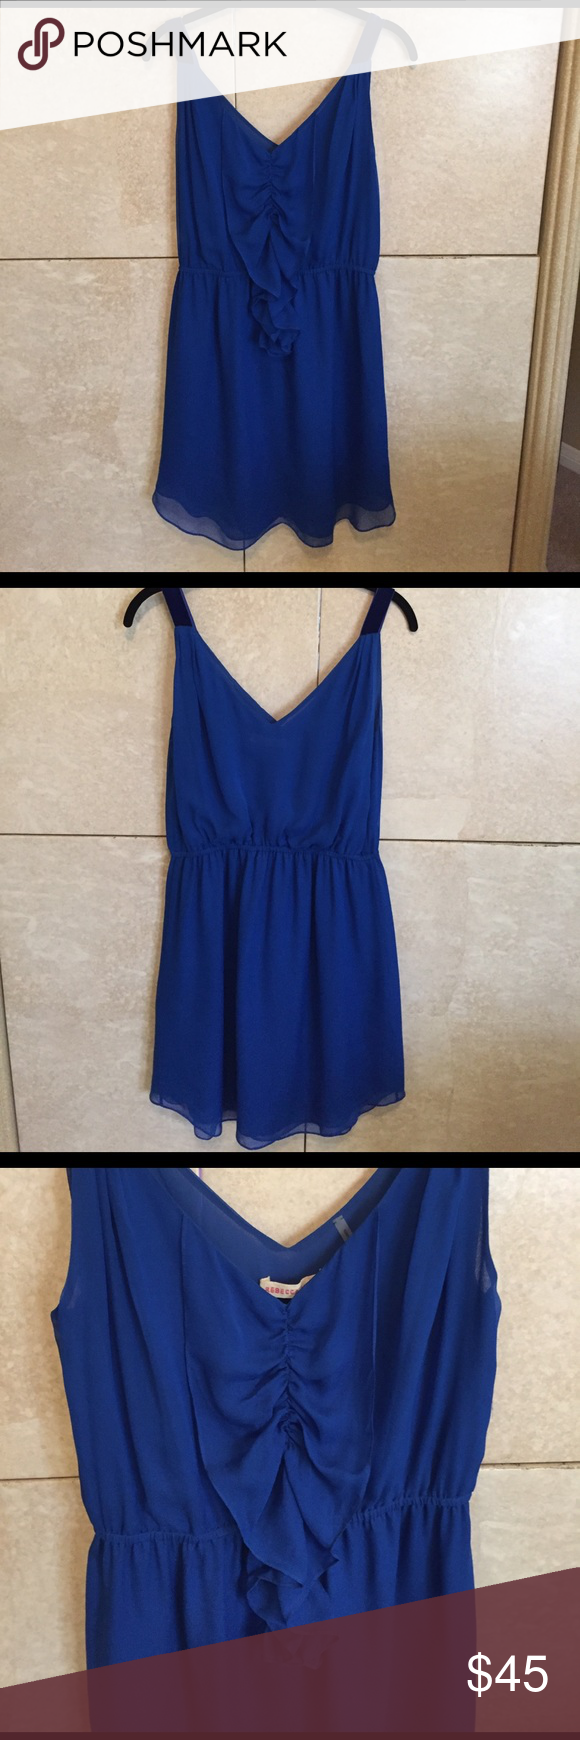 Adorable Rebecca Taylor royal blue dress size 4 Beautiful Rebecca Taylor sleeveless royal blue dress in size 4. Ruffle down front and velvet detail on straps. Excellent condition! Flowy material and flattering silhouette. Rebecca Taylor Dresses Mini